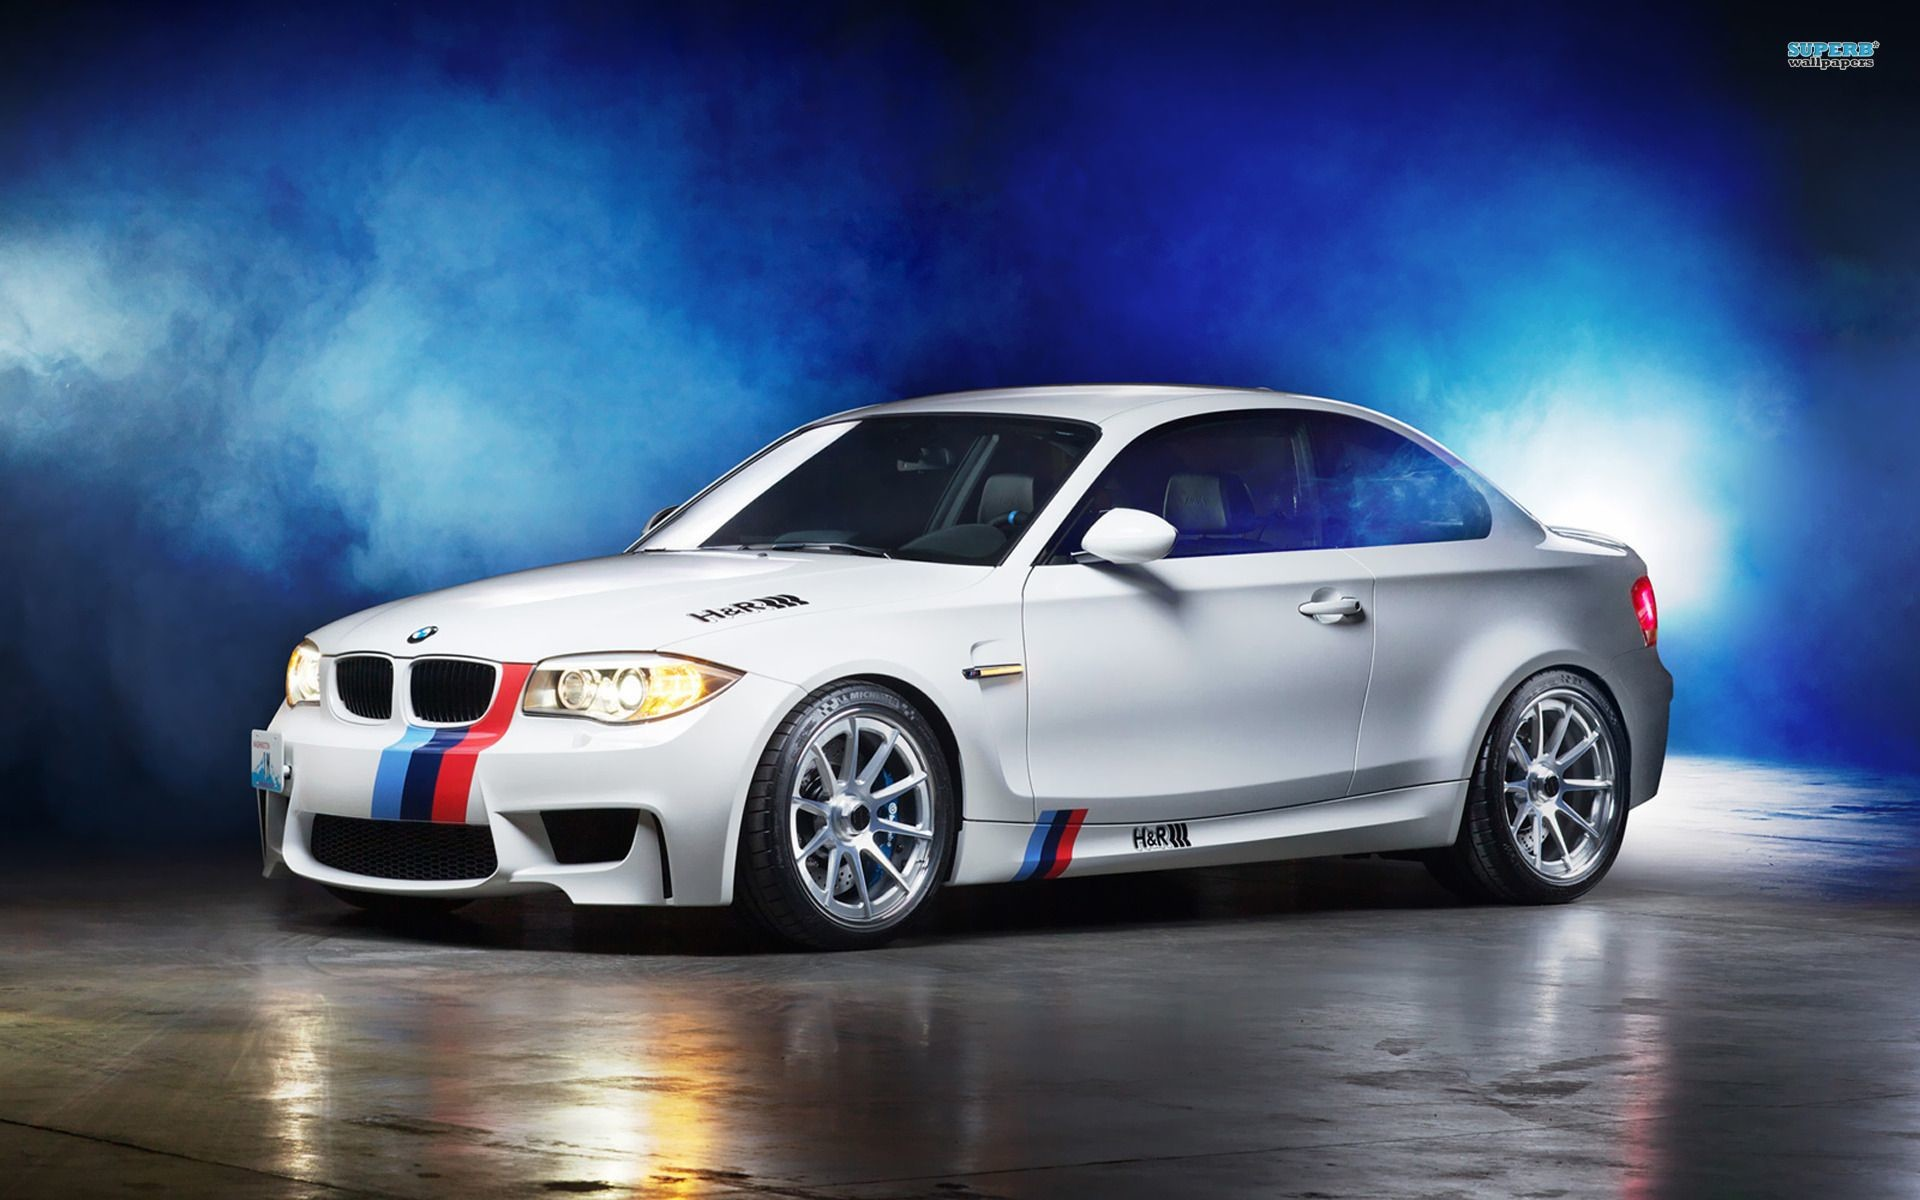 Res: 1920x1200, i coupe HiRes Wallpaper Images Page 1920×1440 Bmw 135i wallpaper (60  Wallpapers) | Adorable Wallpapers